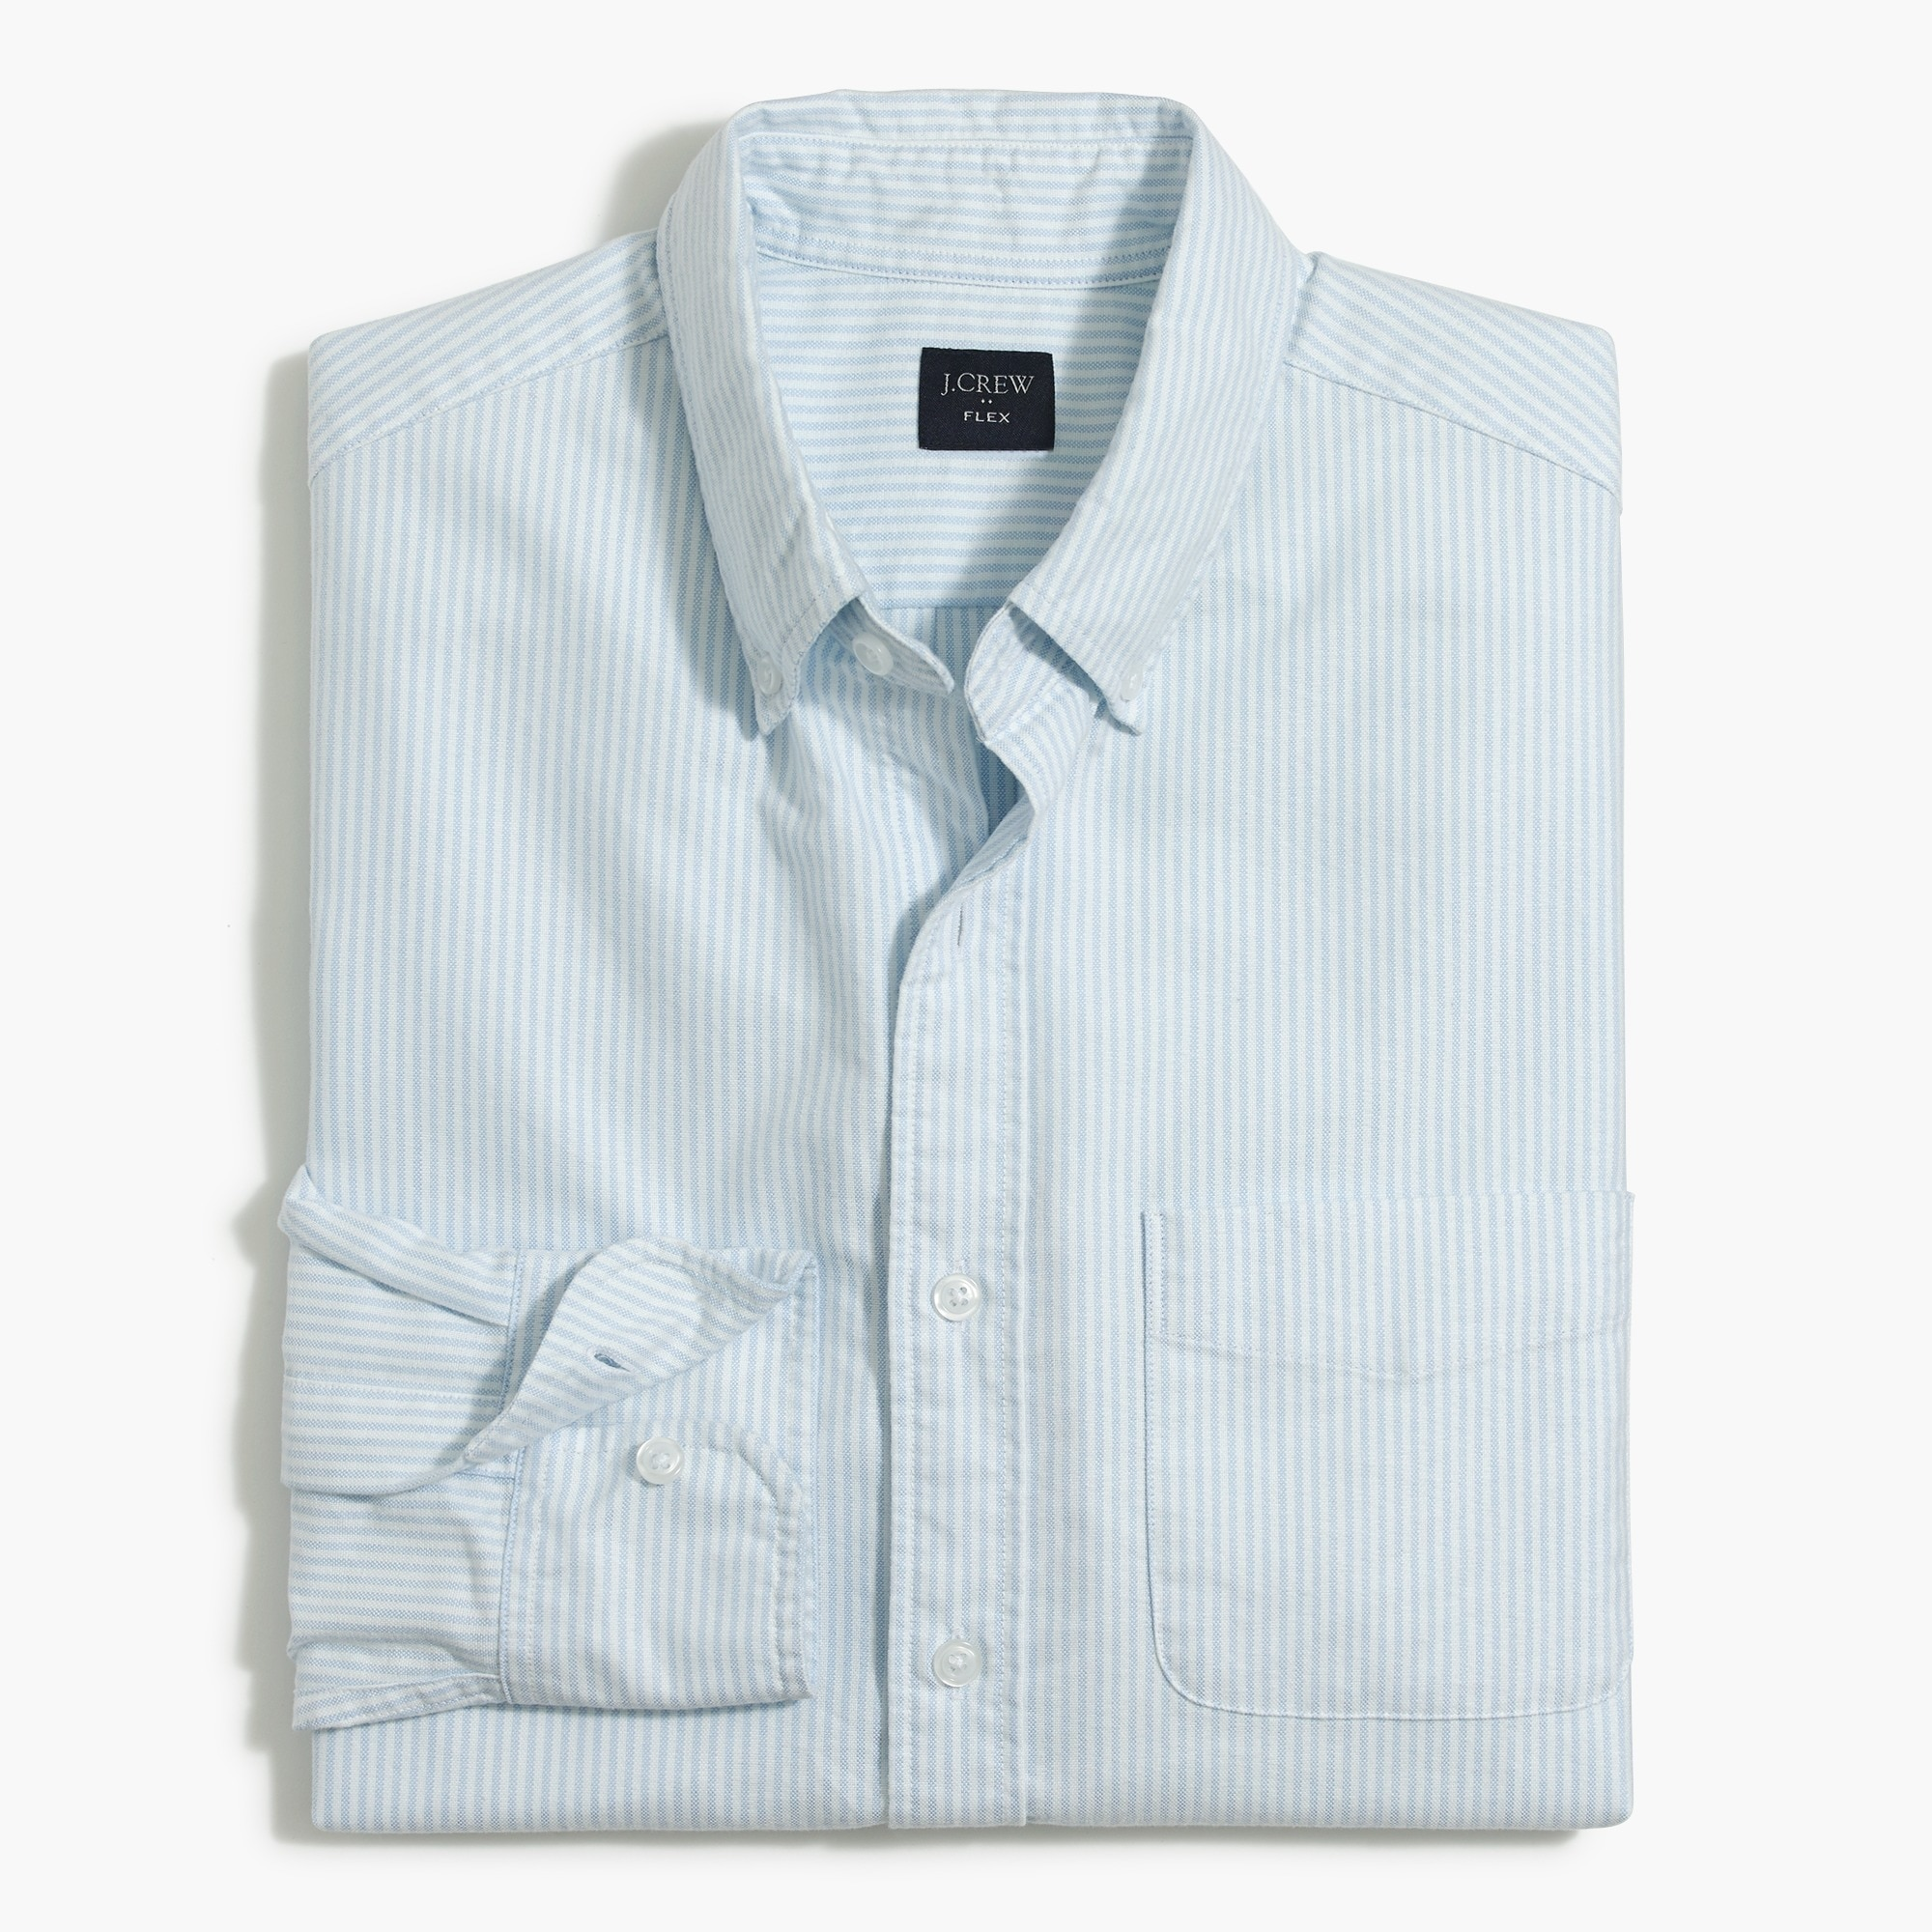 factory mens Flex oxford cotton shirt